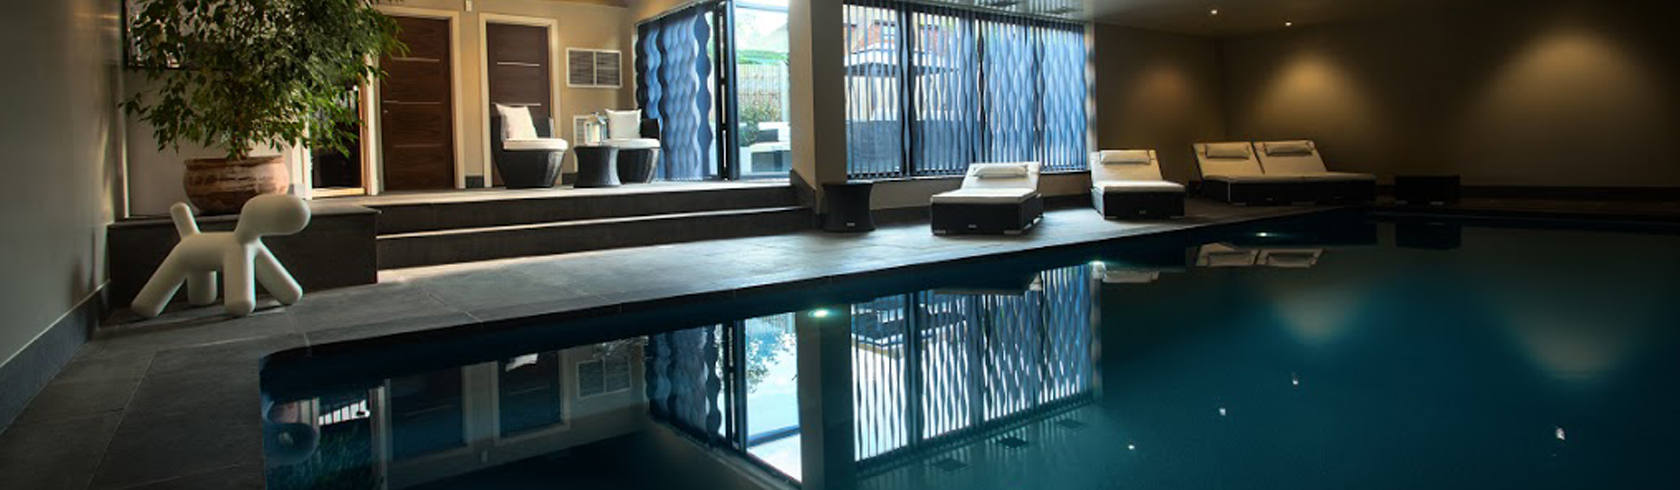 Luxury Indoor Swimming Pool Design & Installation | Compass Pools